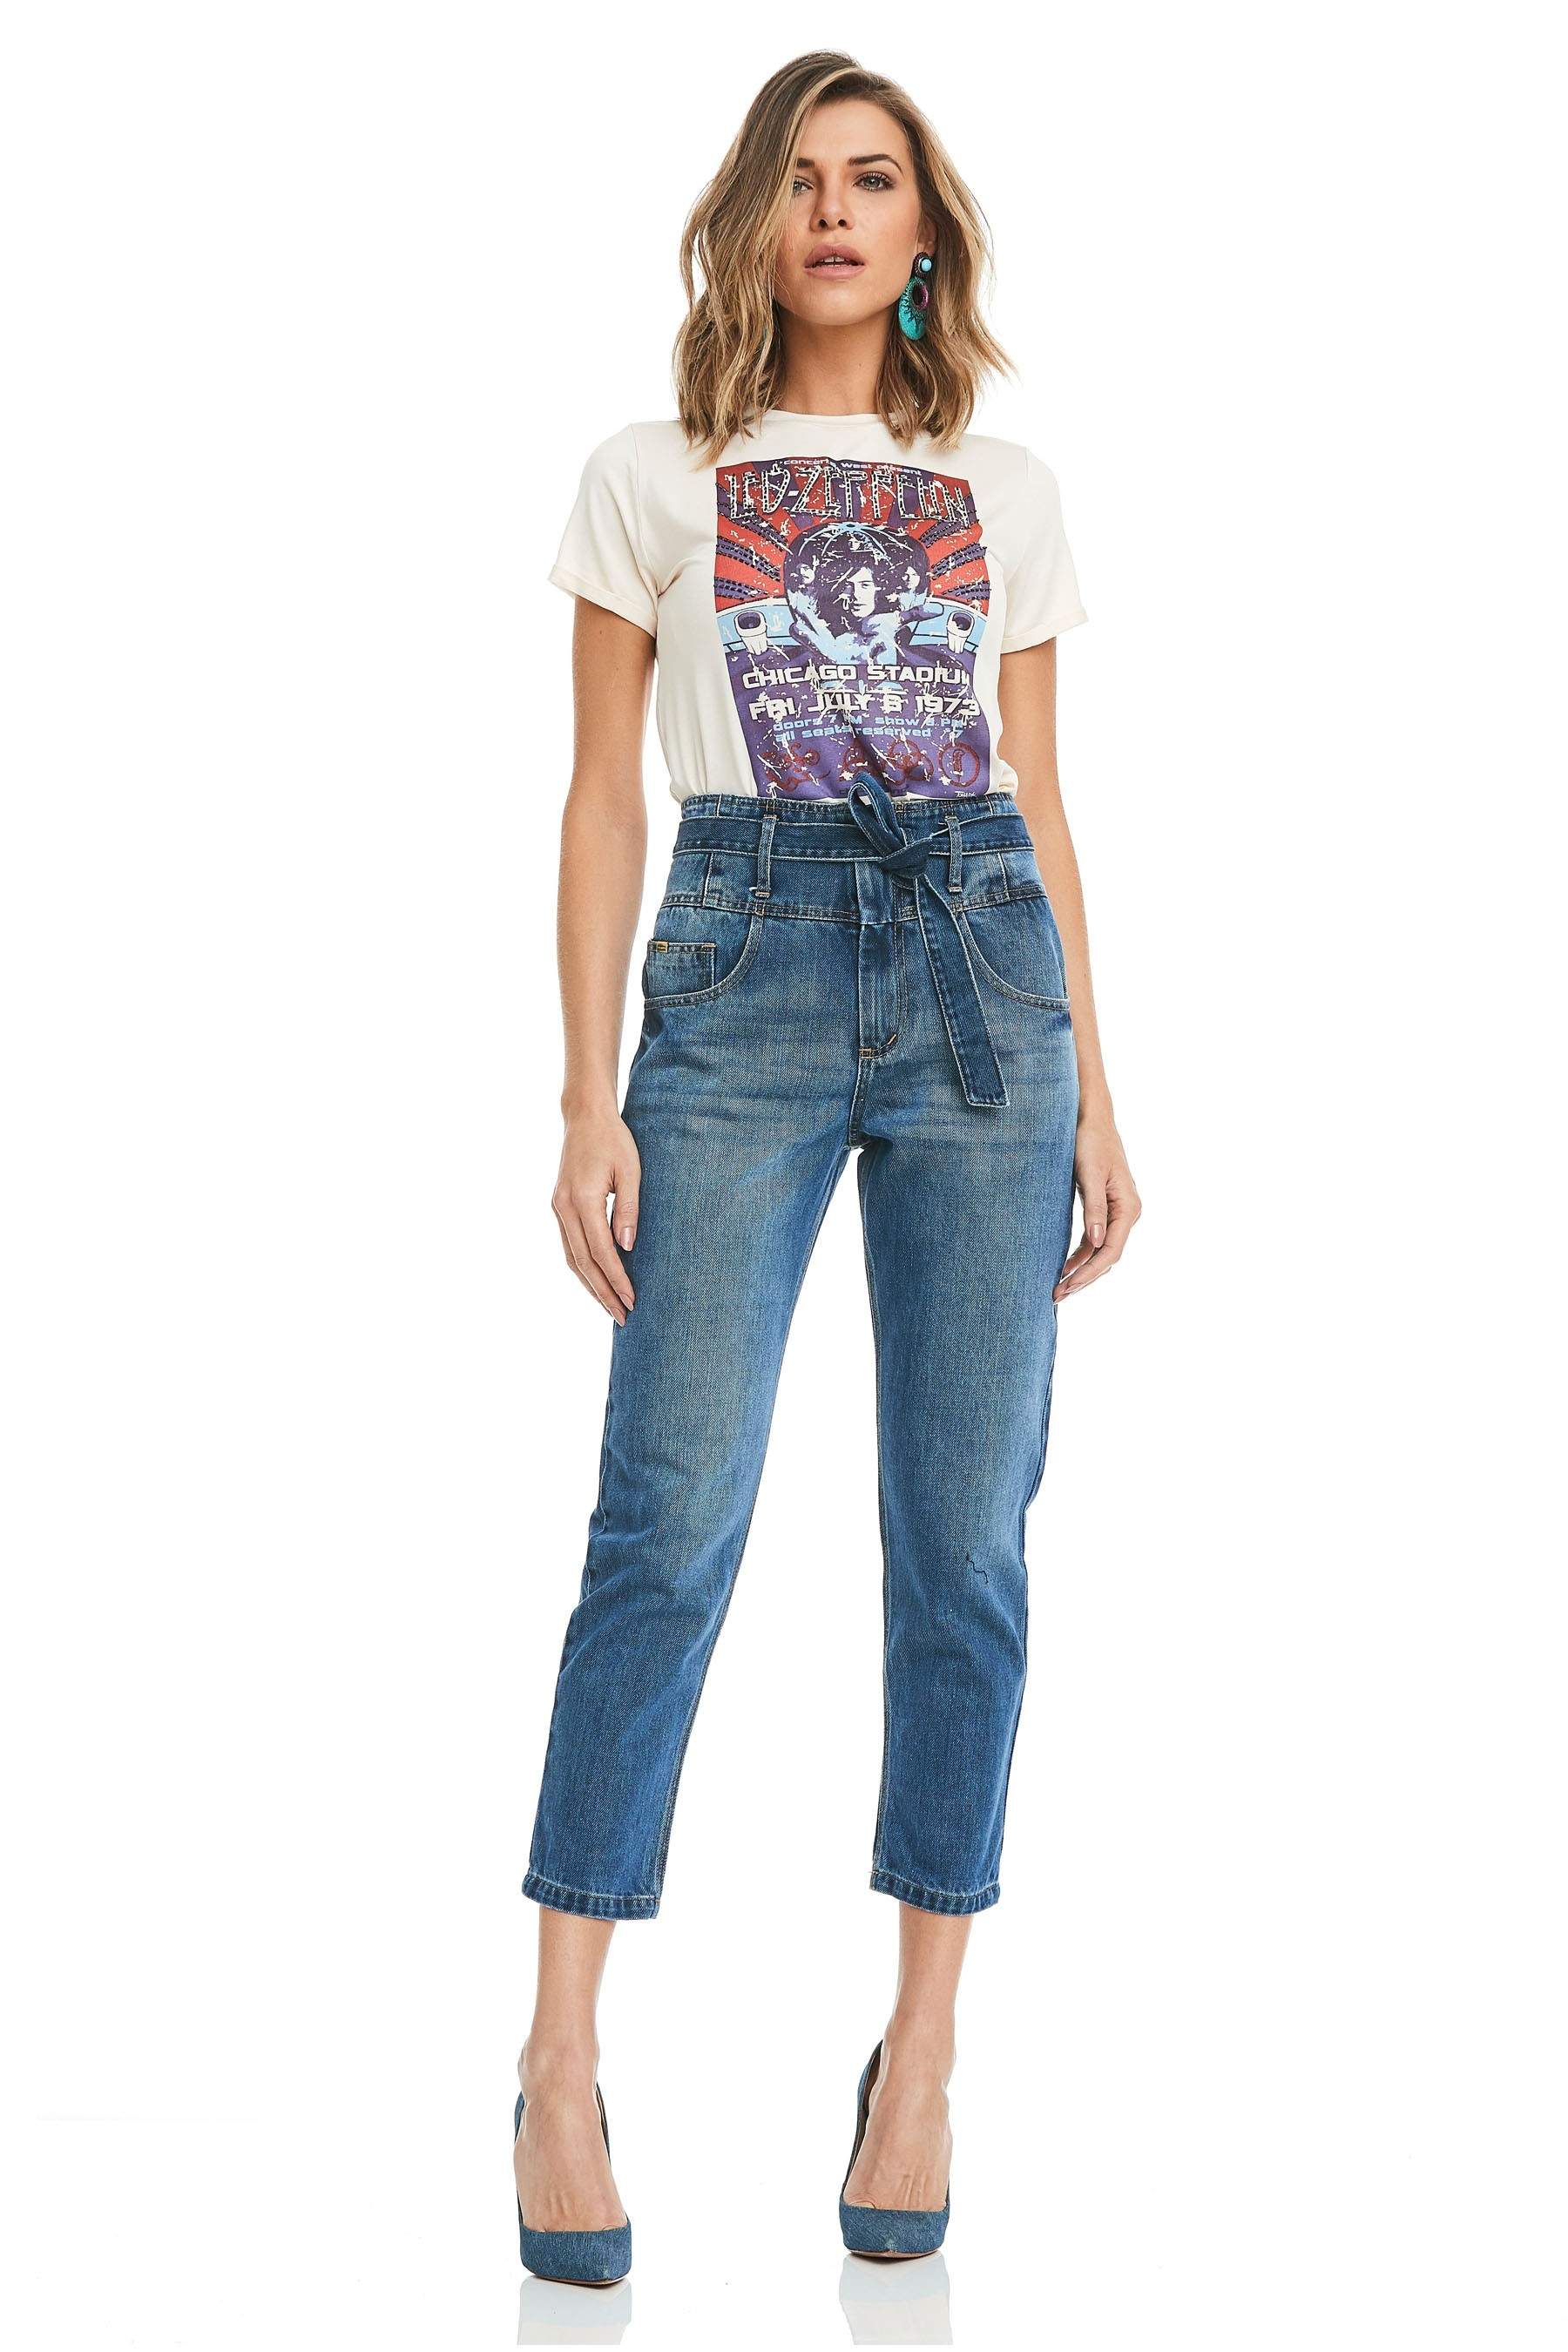 clochard-jeans-looks (1)